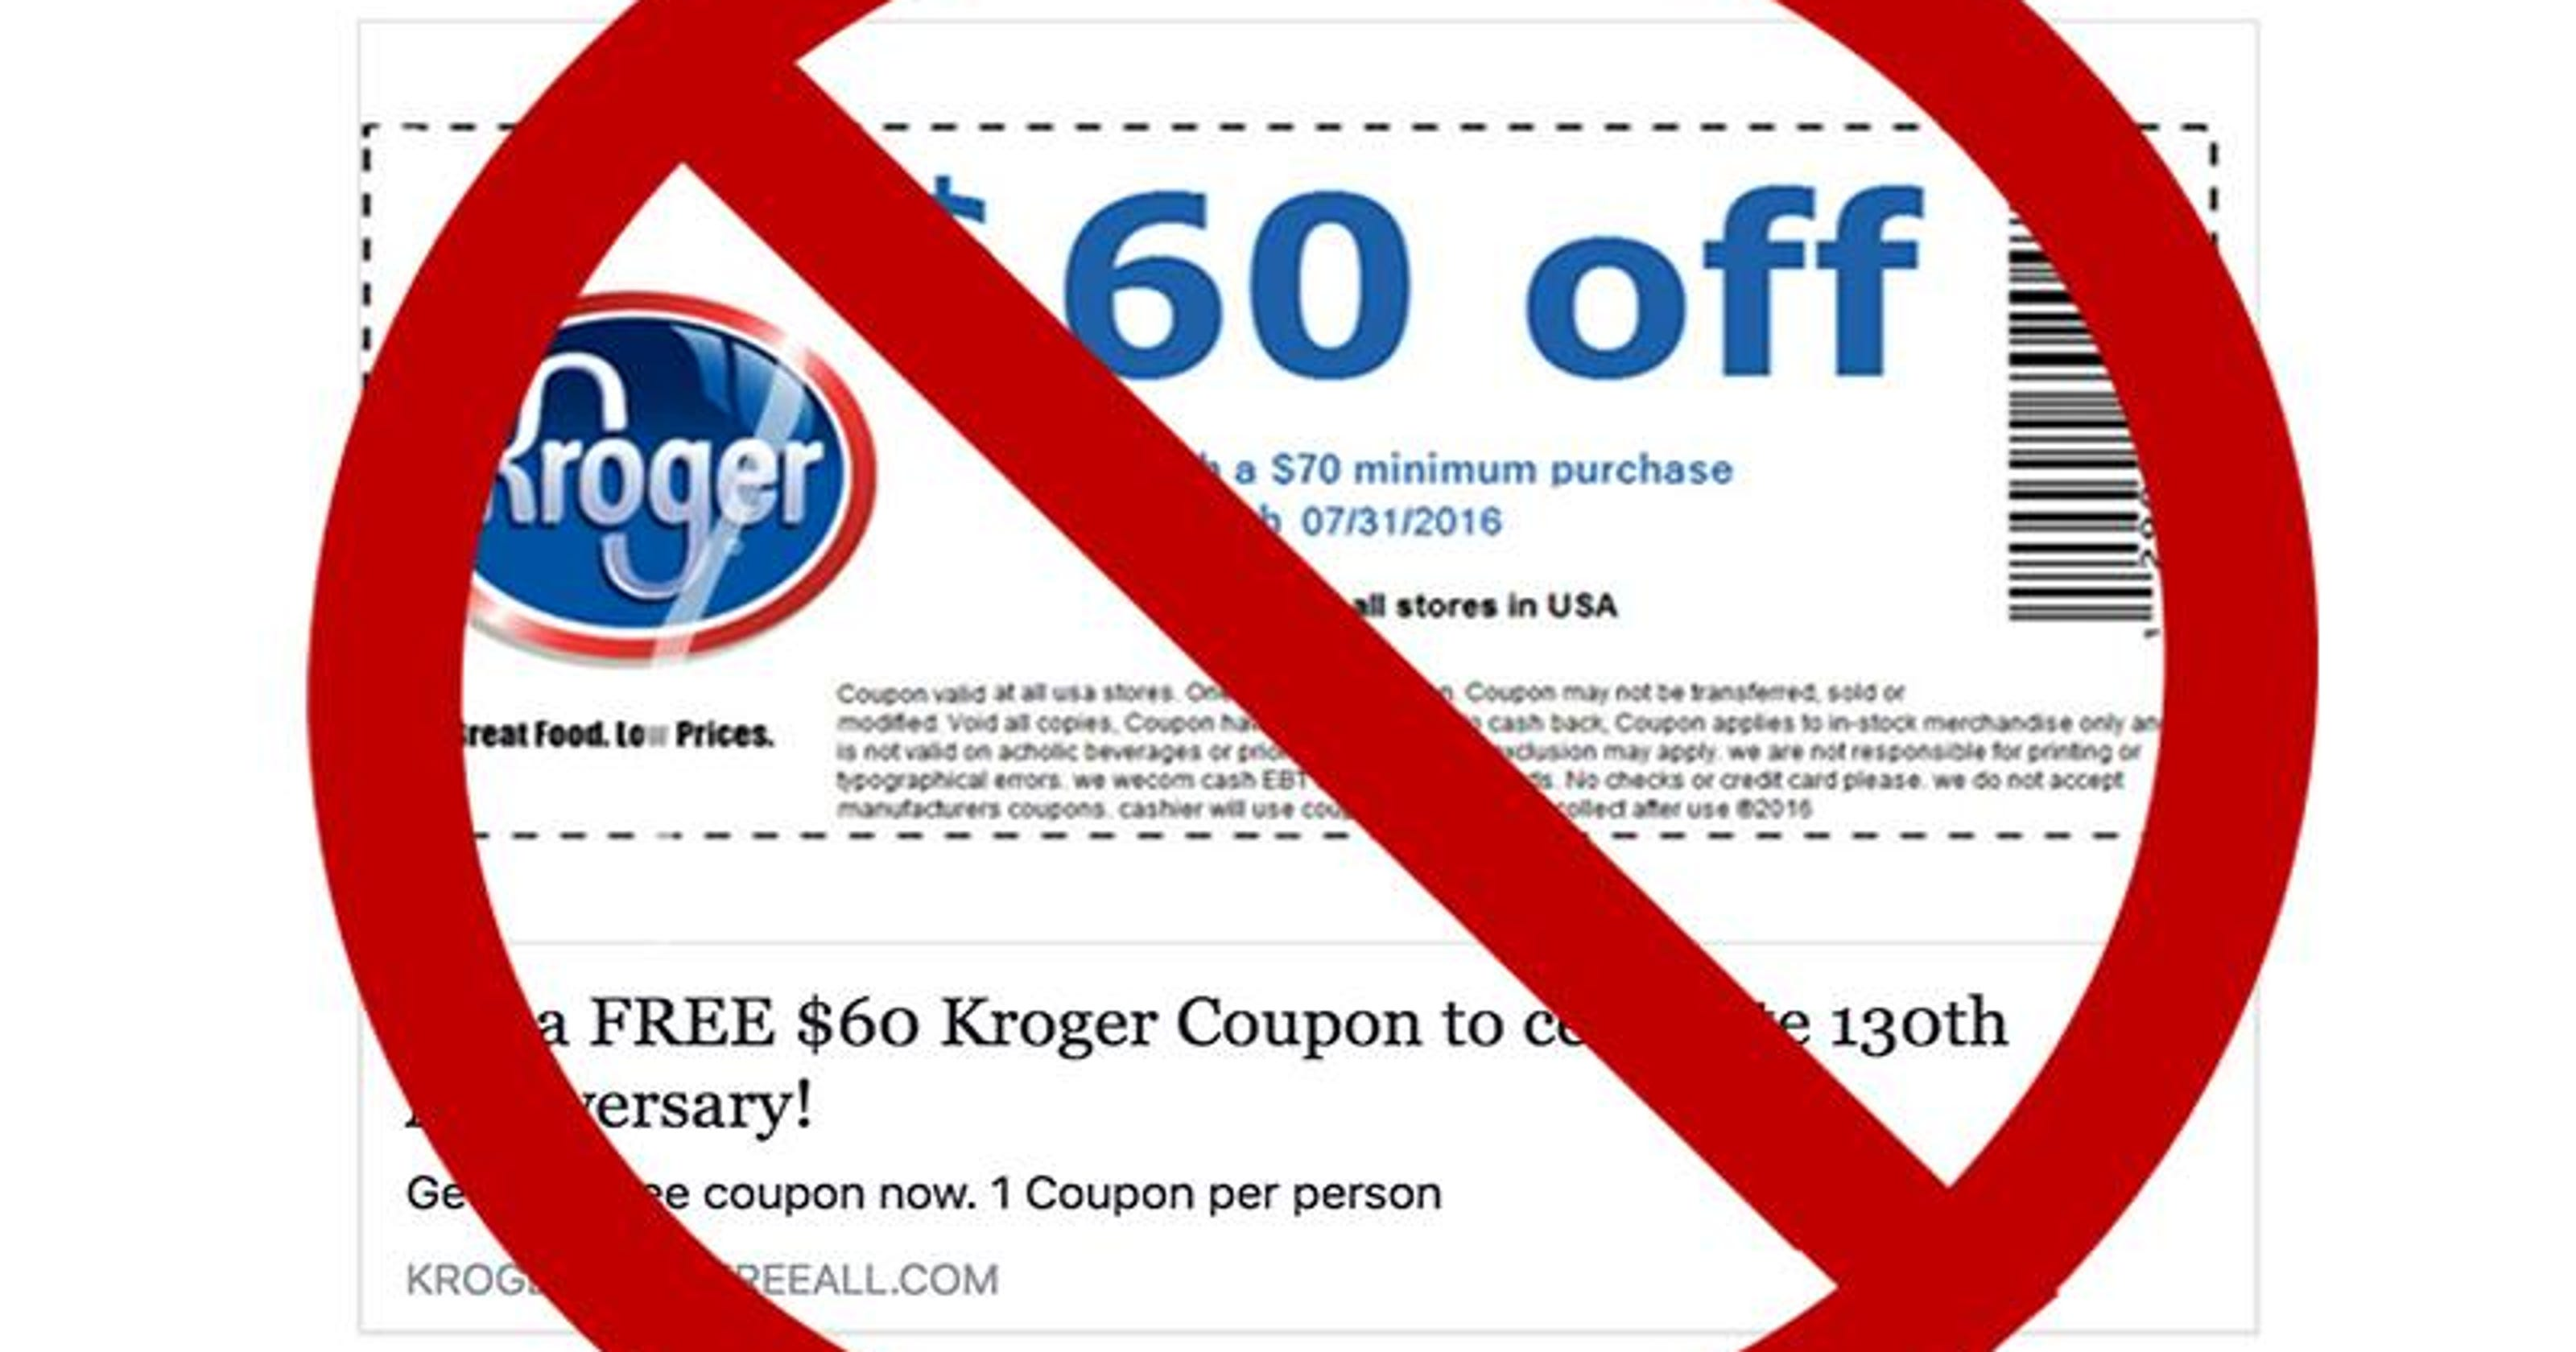 Kroger free groceries coupon is Facebook hoax